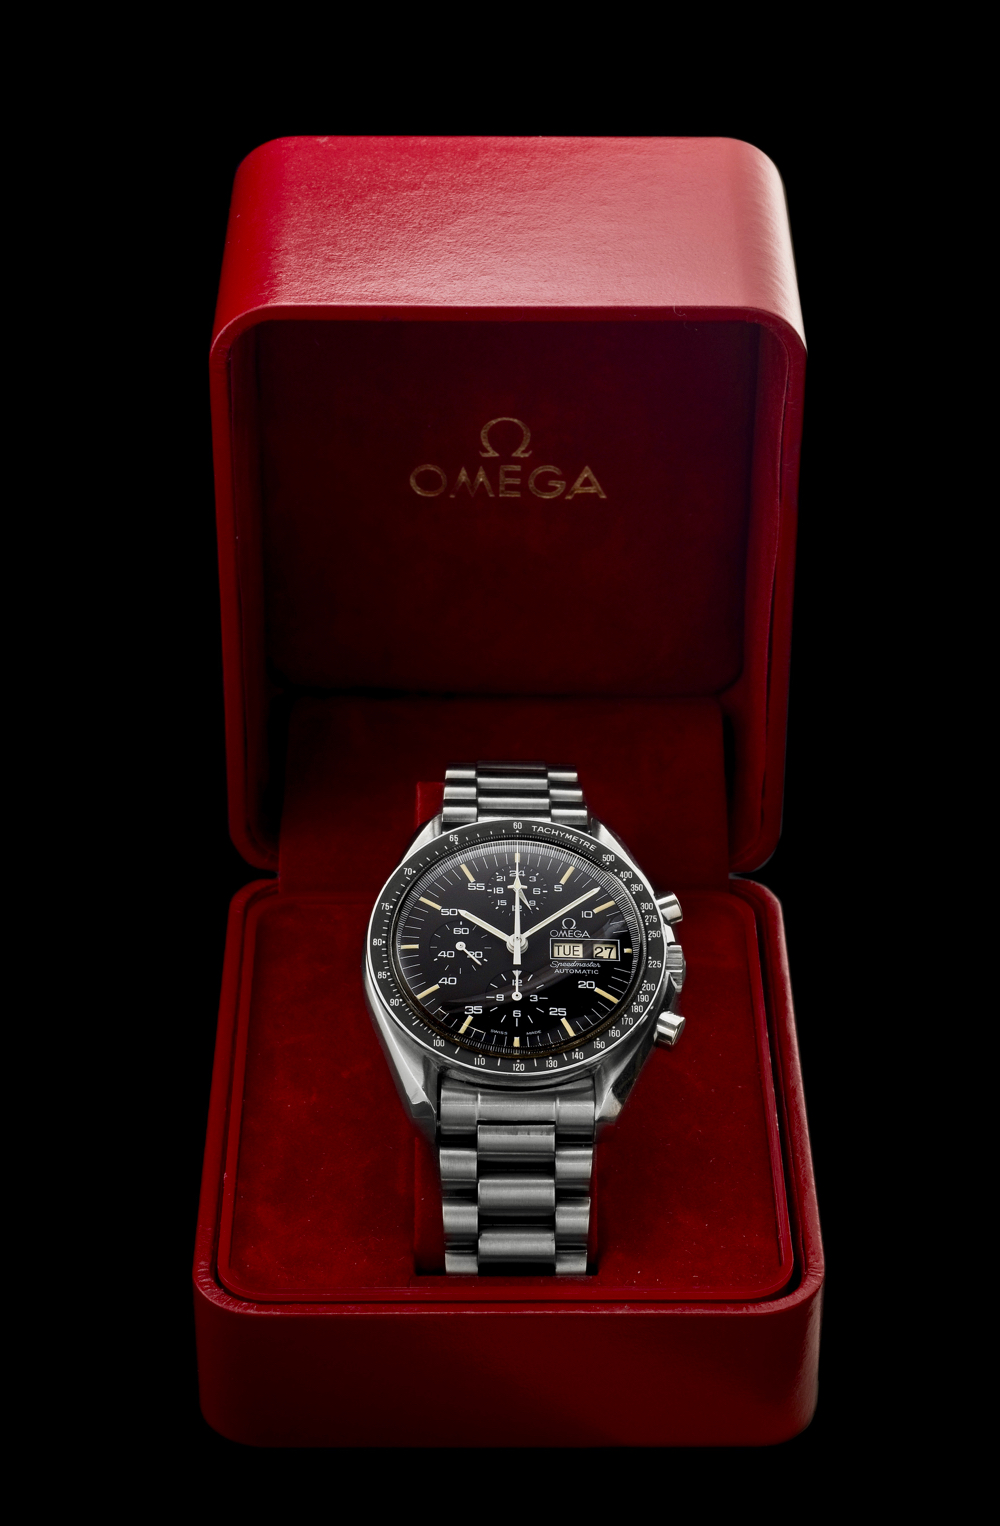 OMEGA SPEEDMASTER HOLY GRAIL - The Complete Review by